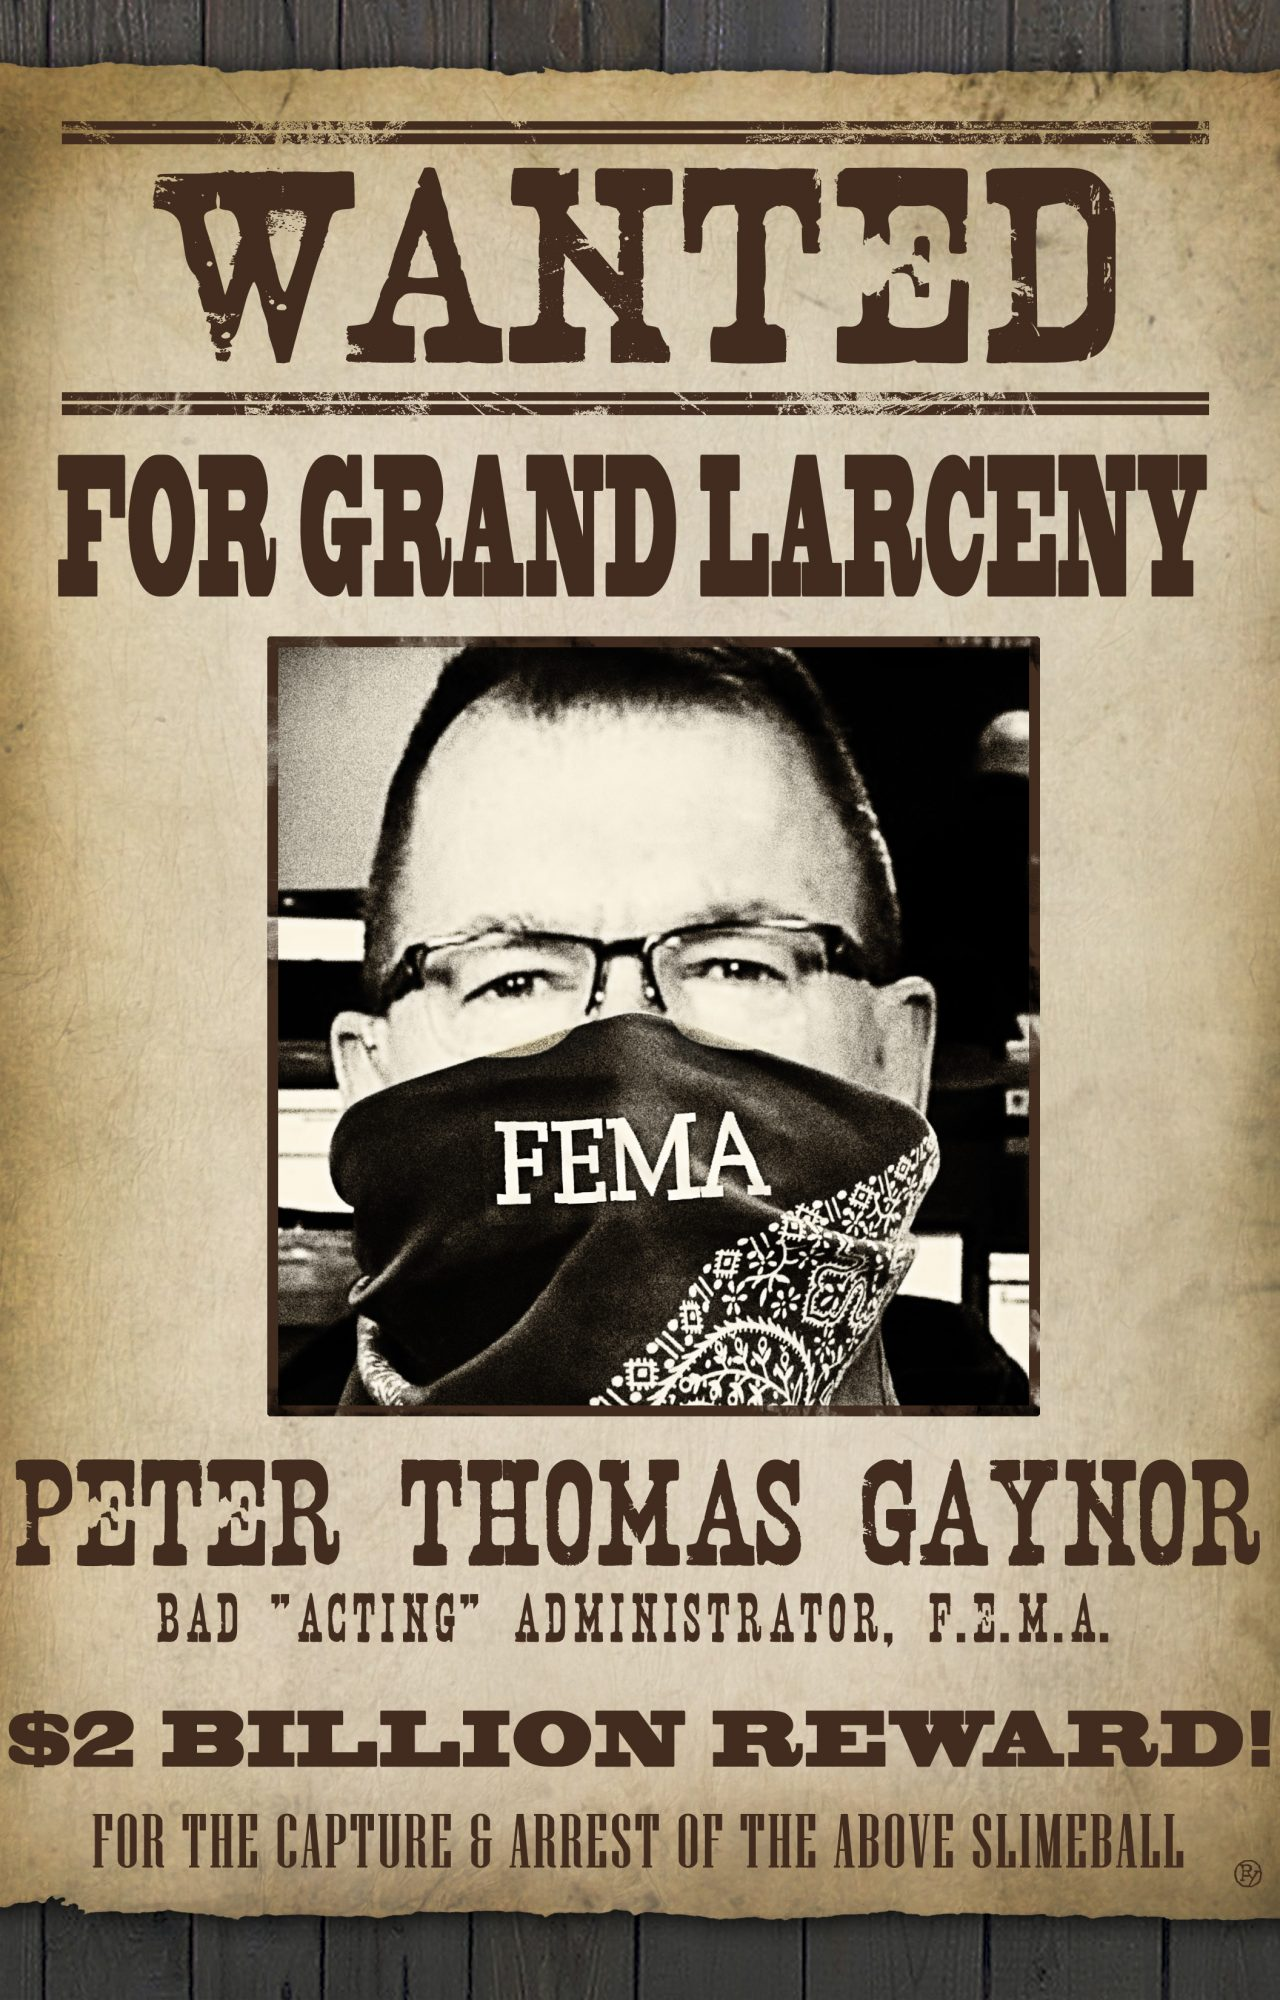 Peter Thomas Gaynor: a Disaster